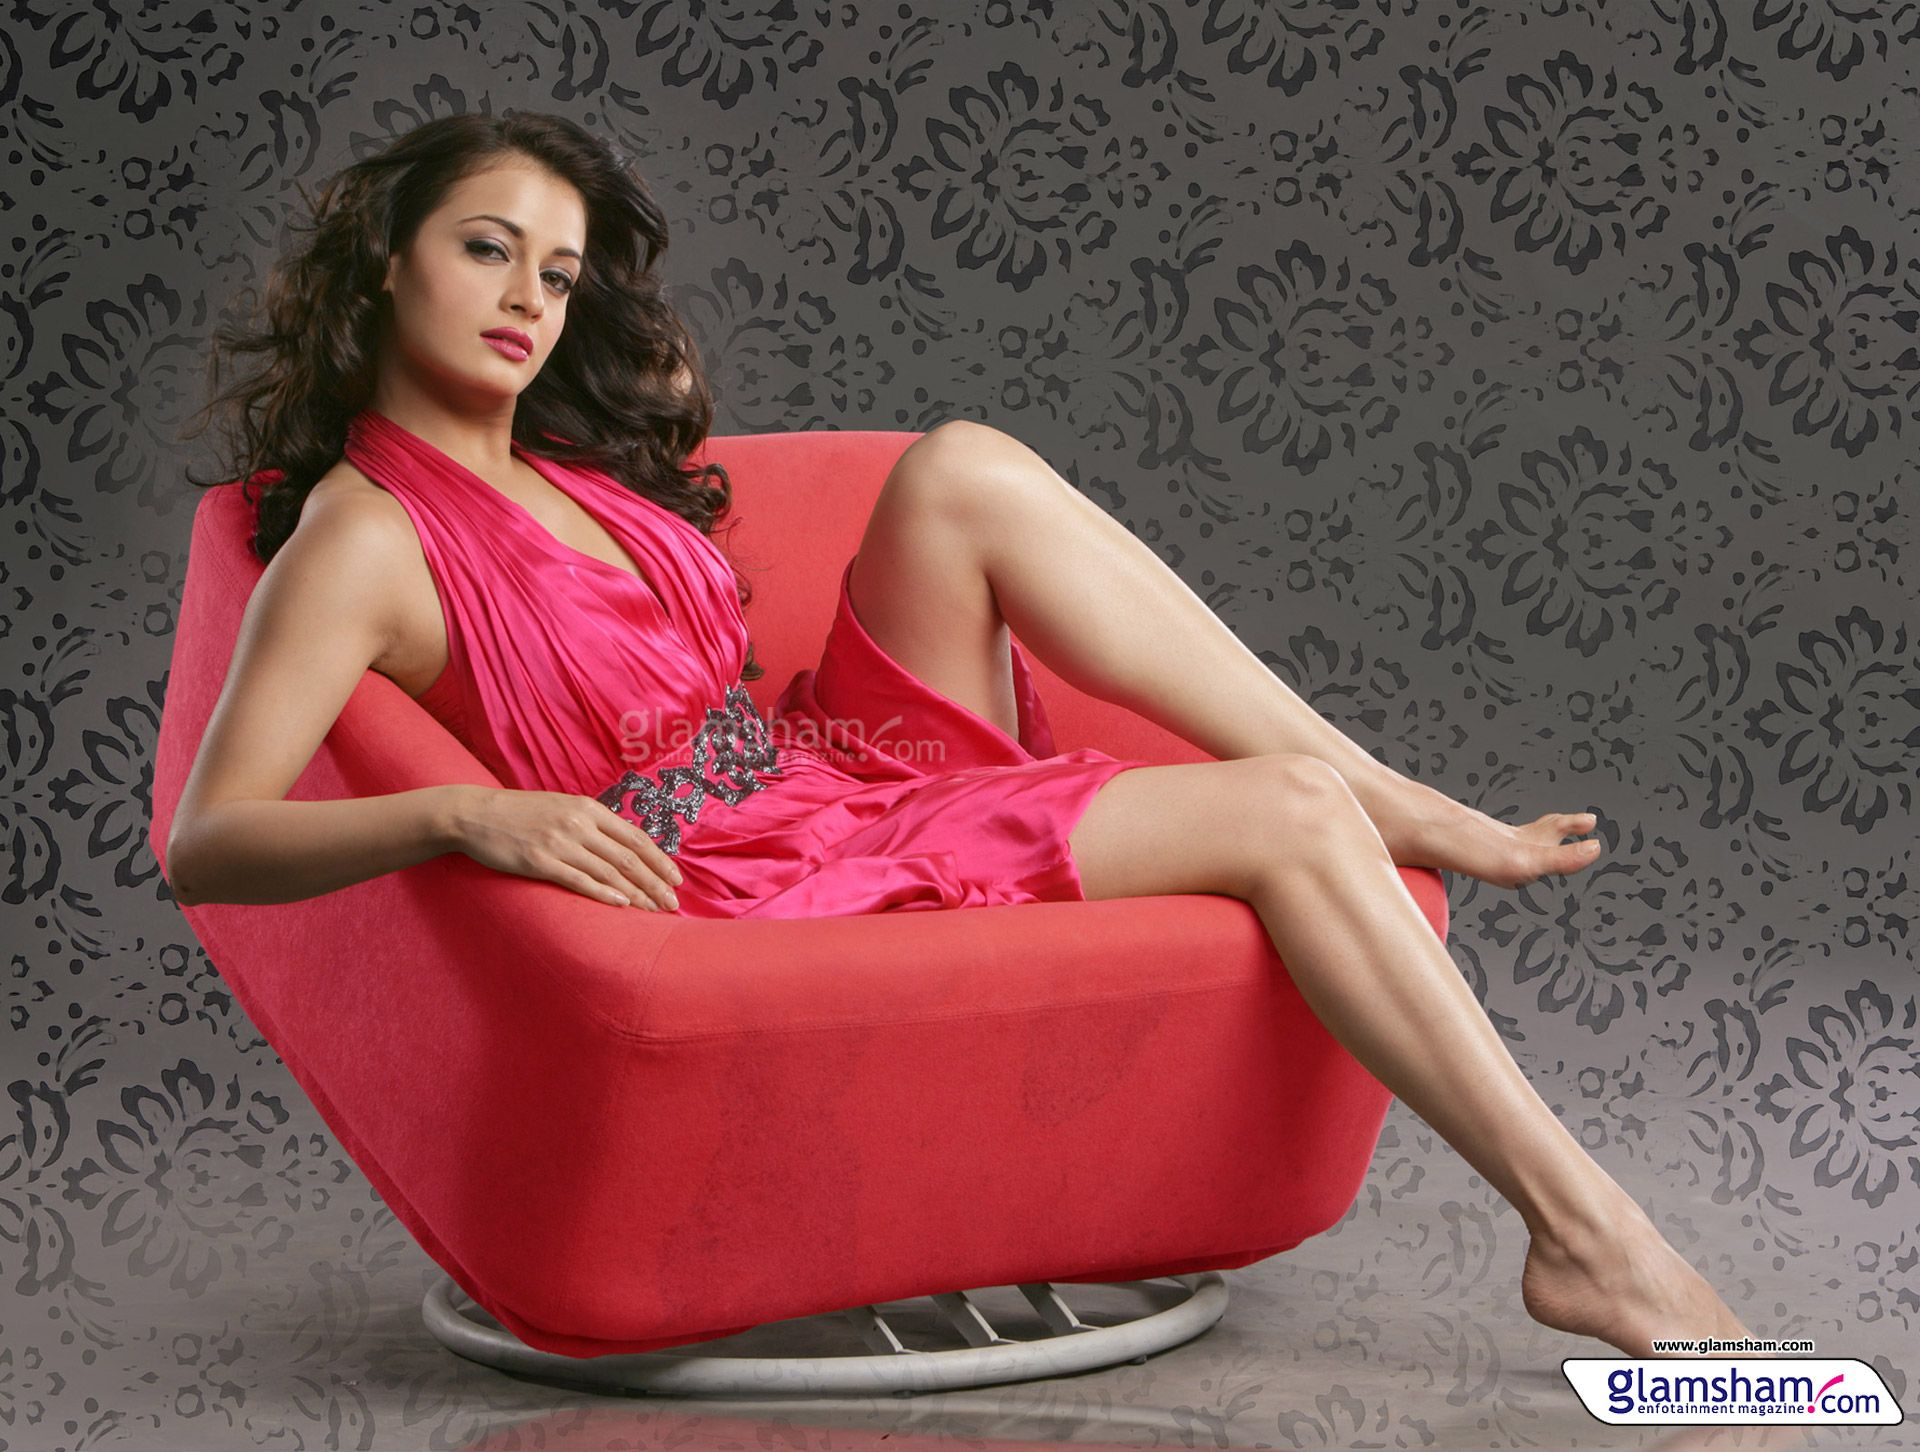 dia mirza hd wallpapersdia mirza wiki, dia mirza films, dia mirza husband, dia mirza diet plan, dia mirza fashion, dia mirza hd wallpapers, dia mirza performance, dia mirza instagram, dia mirza filmography, dia mirza and aishwarya rai, dia mirza, dia mirza wedding, dia mirza marriage, dia mirza biography, dia mirza twitter, dia mirza songs, dia mirza movie list, dia mirza family, dia mirza and sahil sangha, dia mirza wedding pics